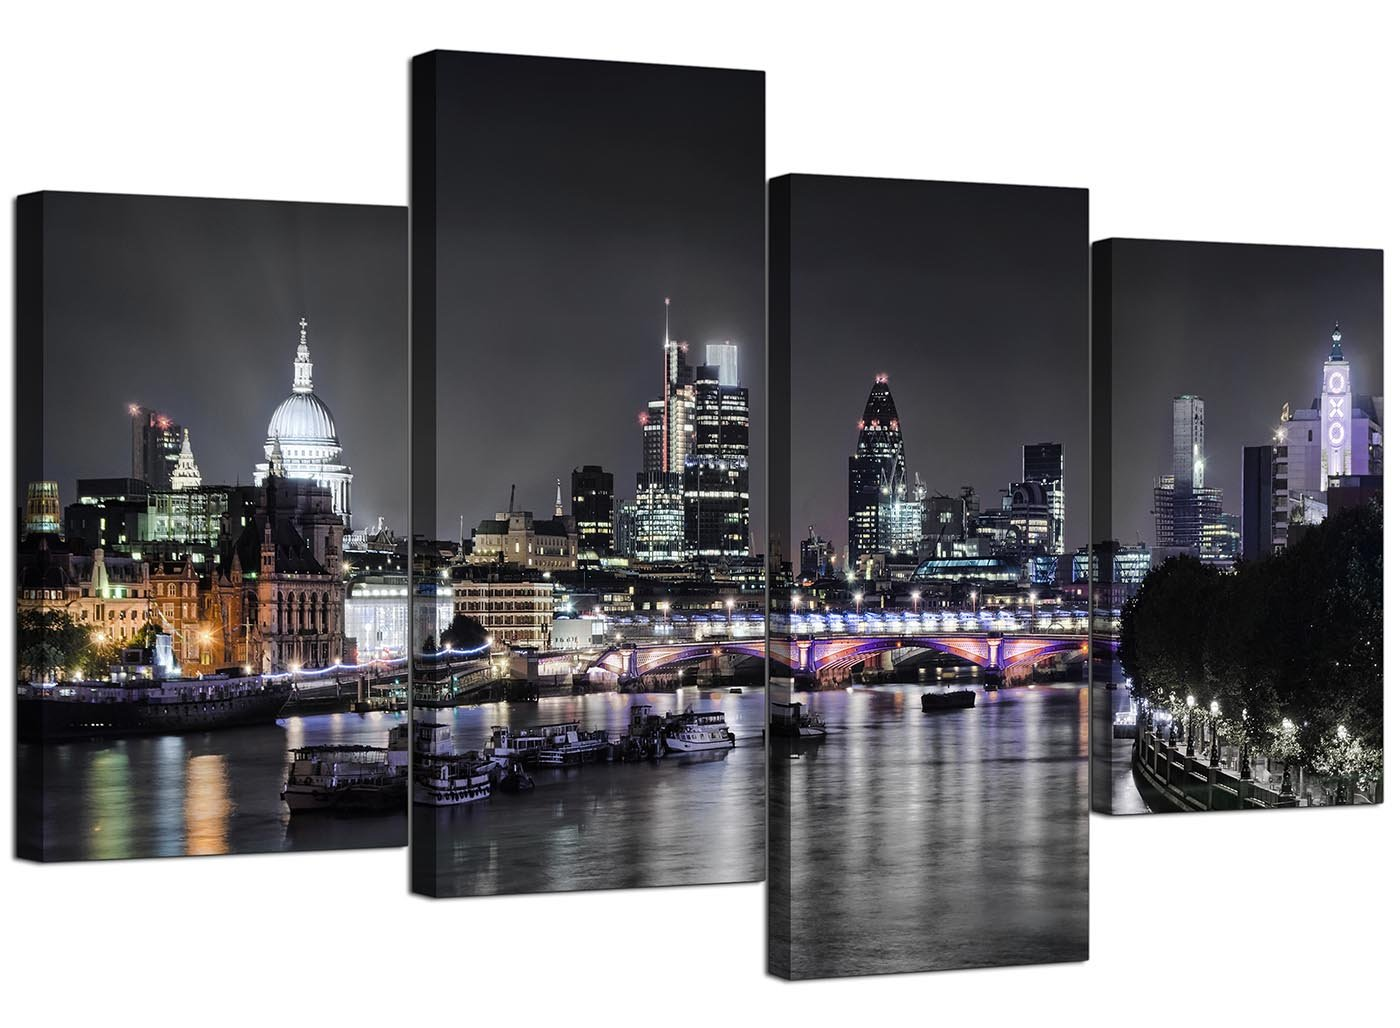 Superior Canvas Wall Art Of London Skyline For Your Living Room   4 Panel   Pictures